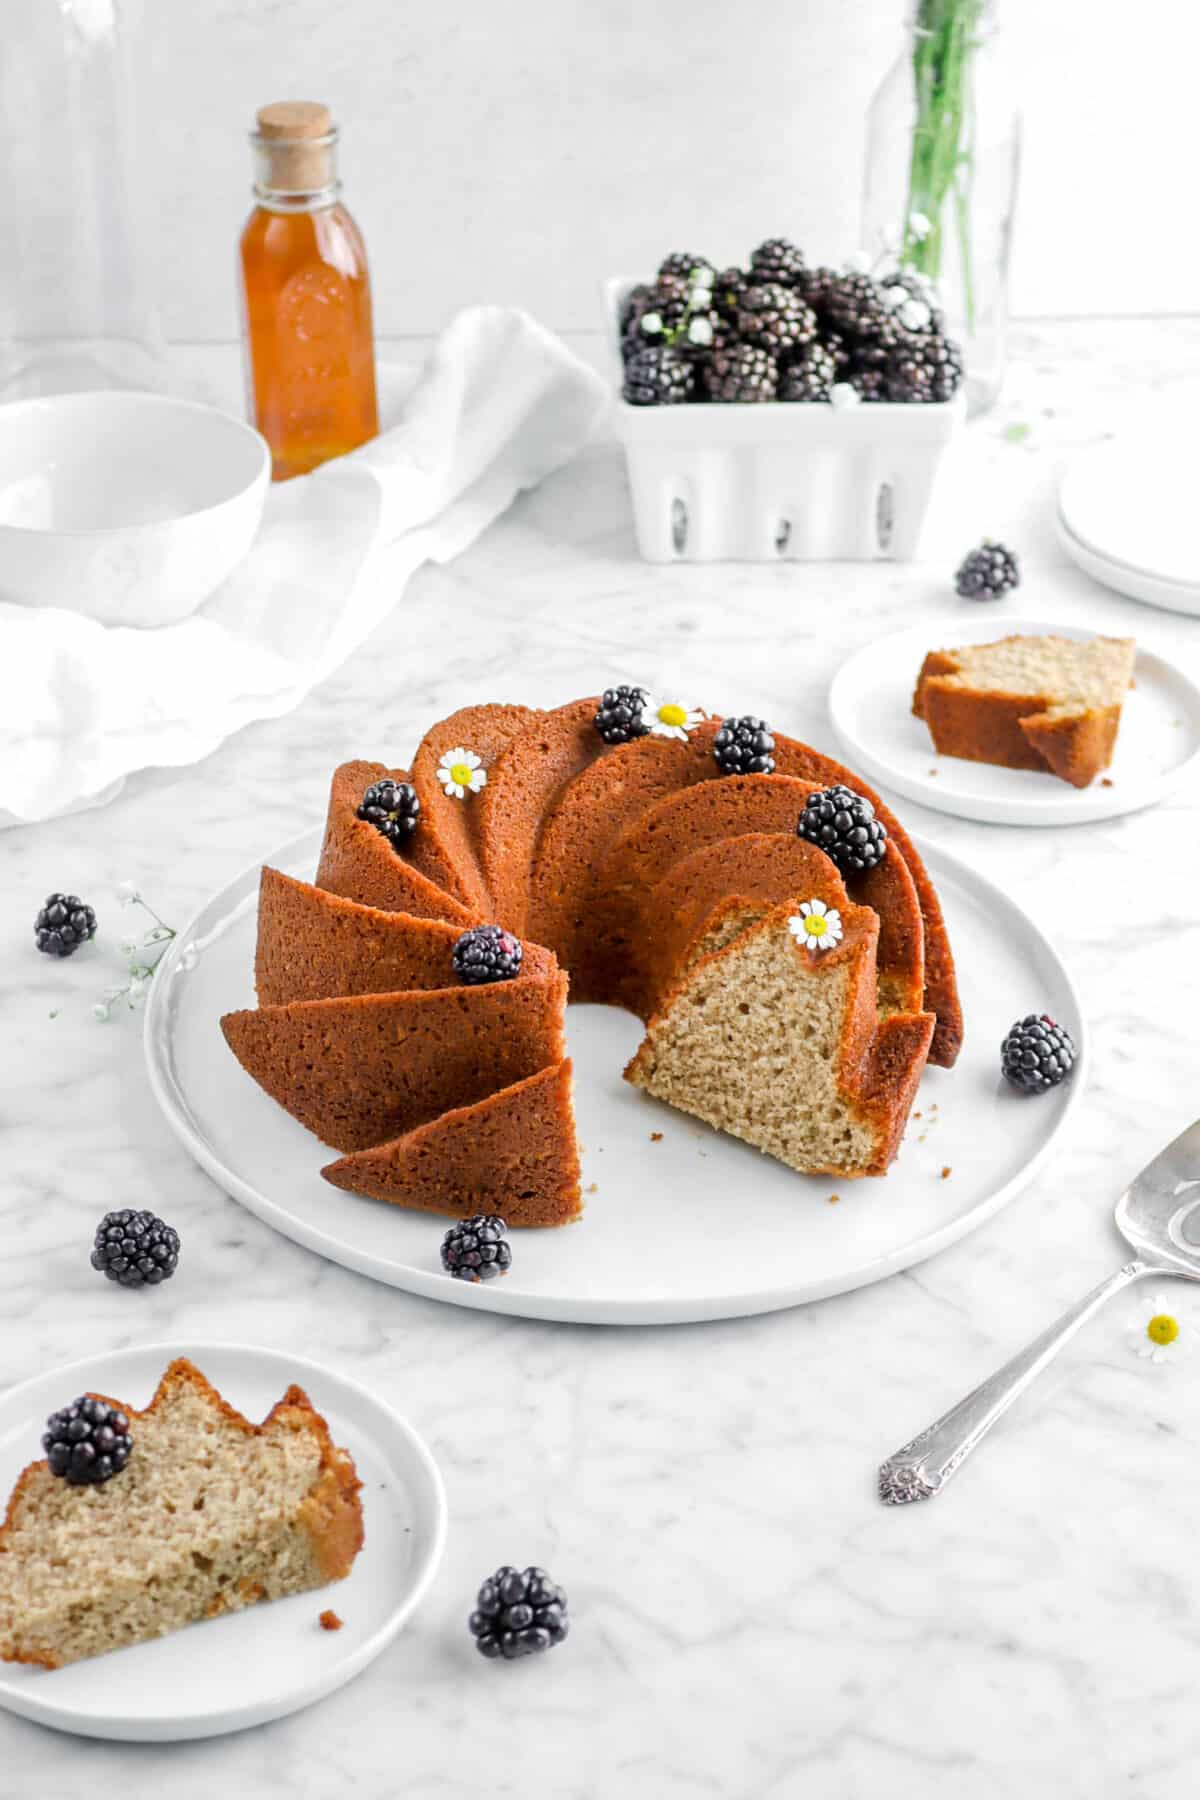 blackberry apple spice cake with a slice in front and behind, whole blackberries scattered around, chamomile flowers, a jar of honey, and a white napkin